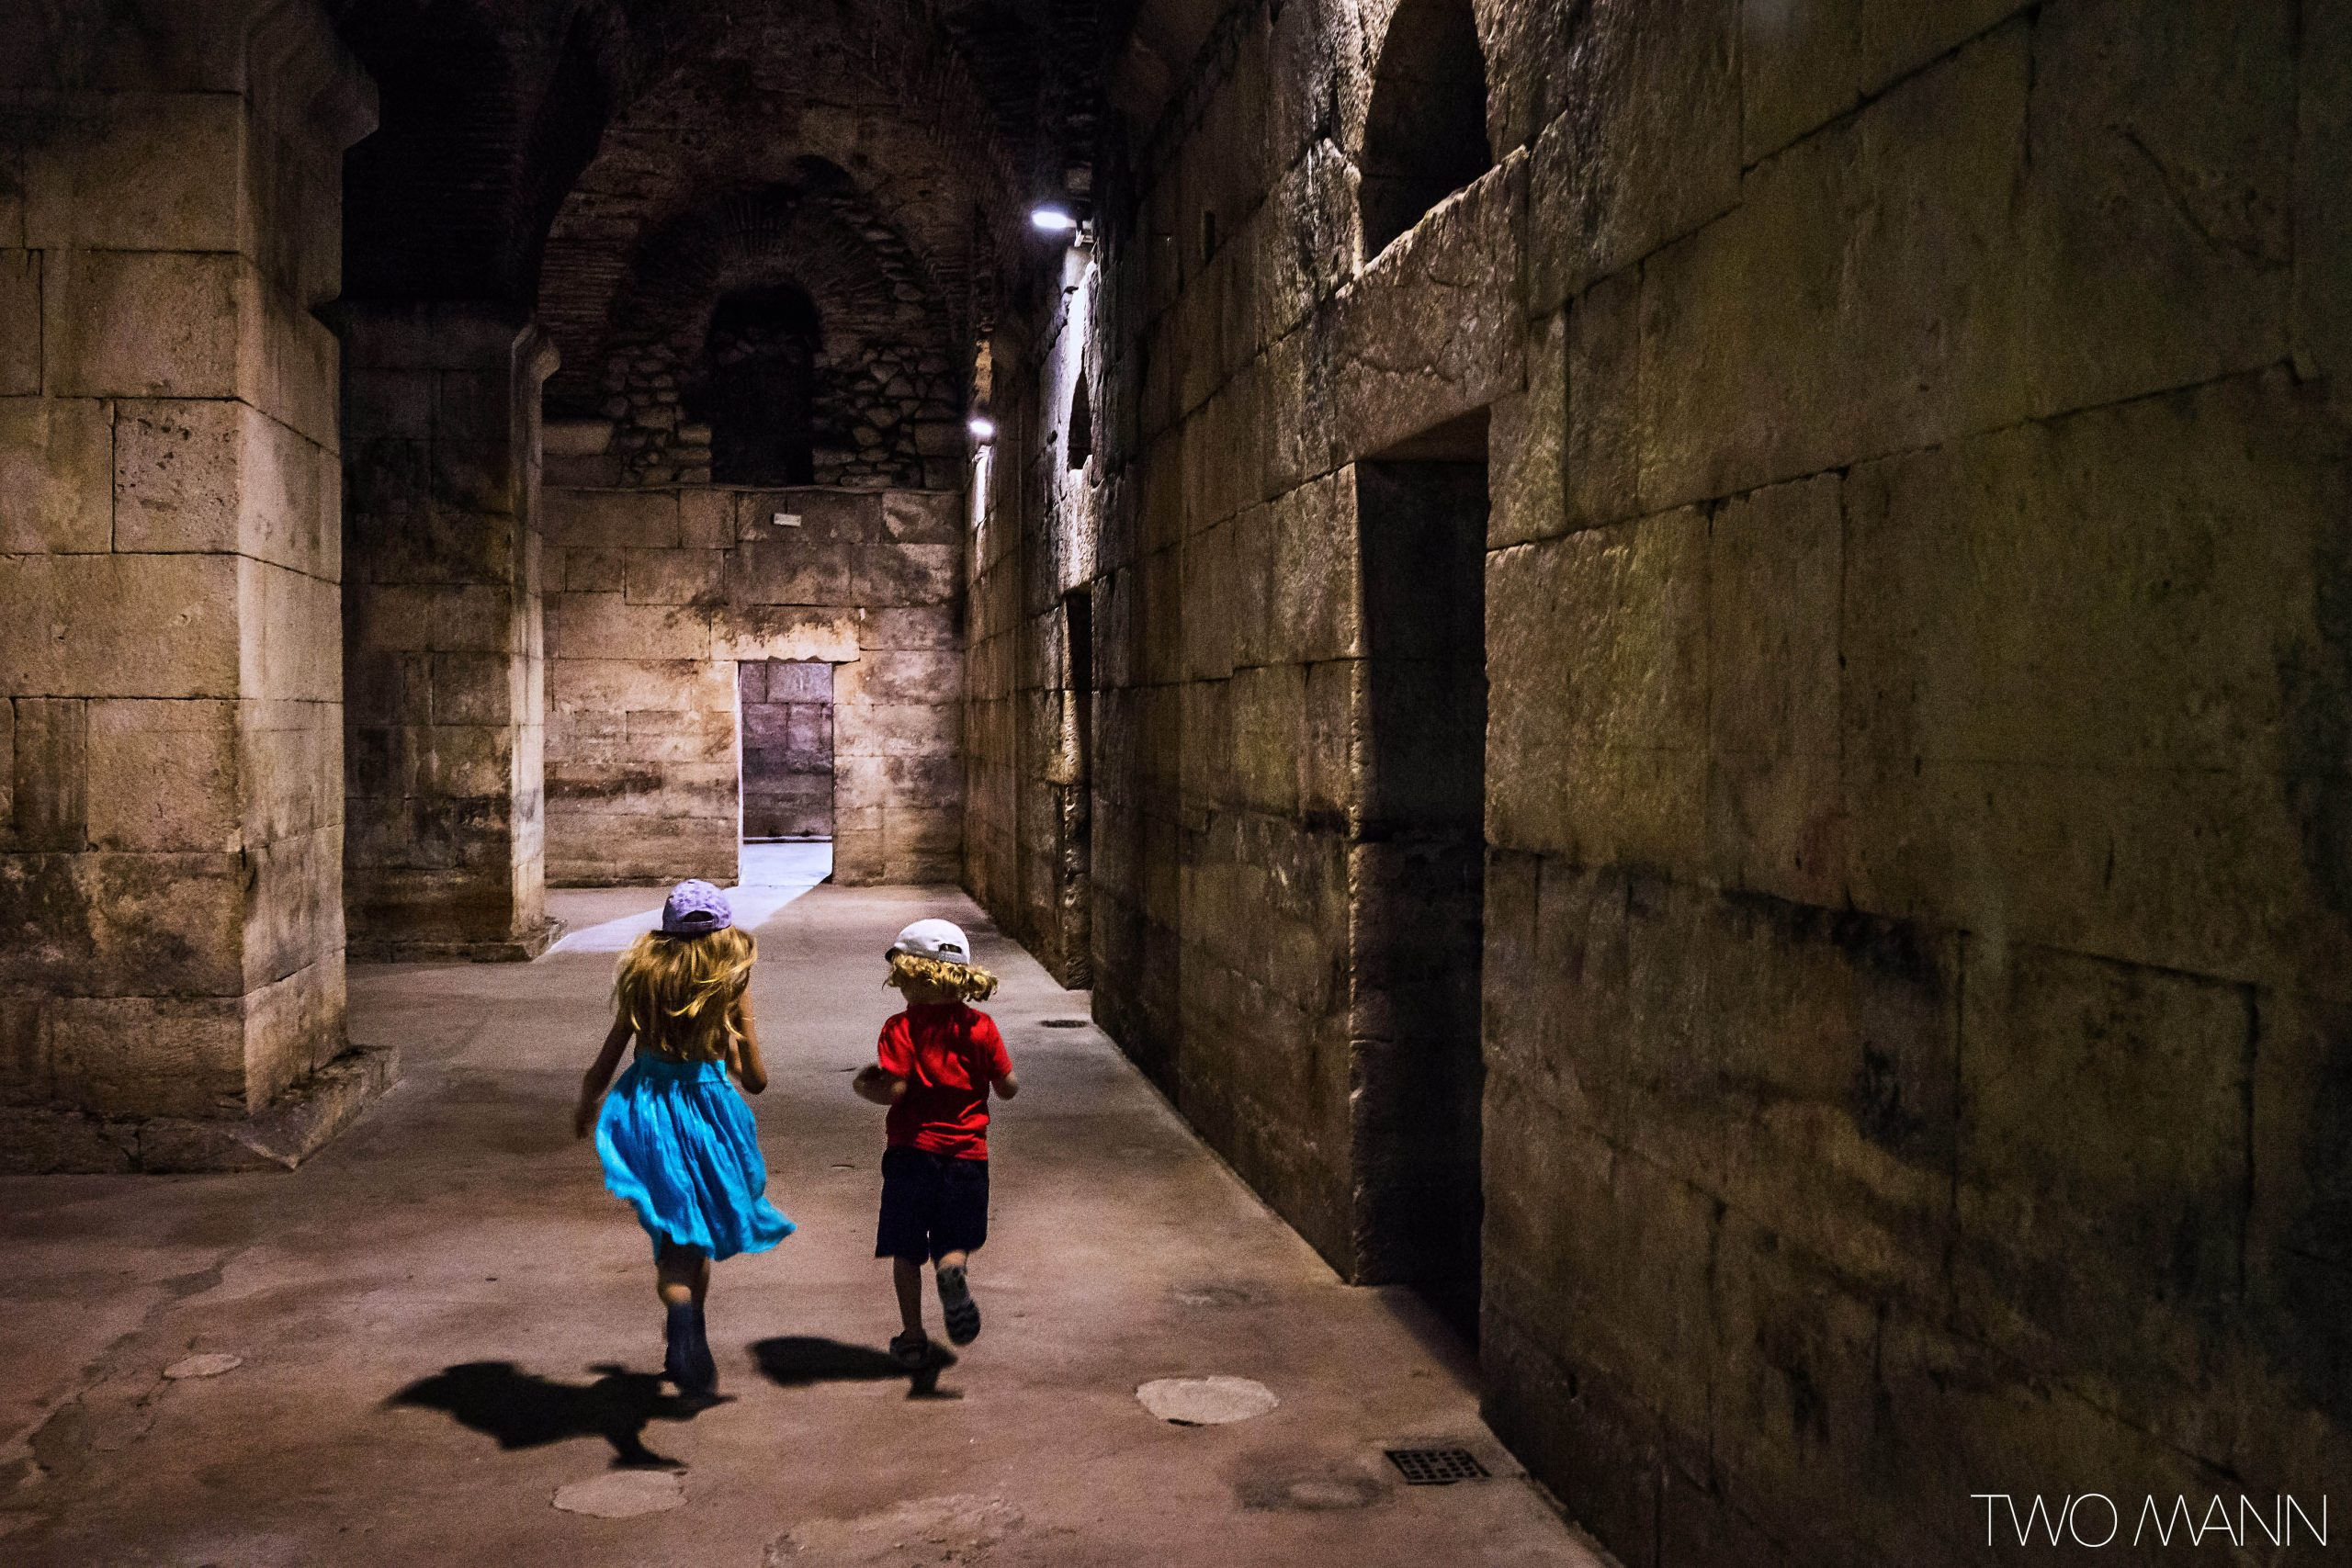 Young girl and boy run down stone hallway in old palace